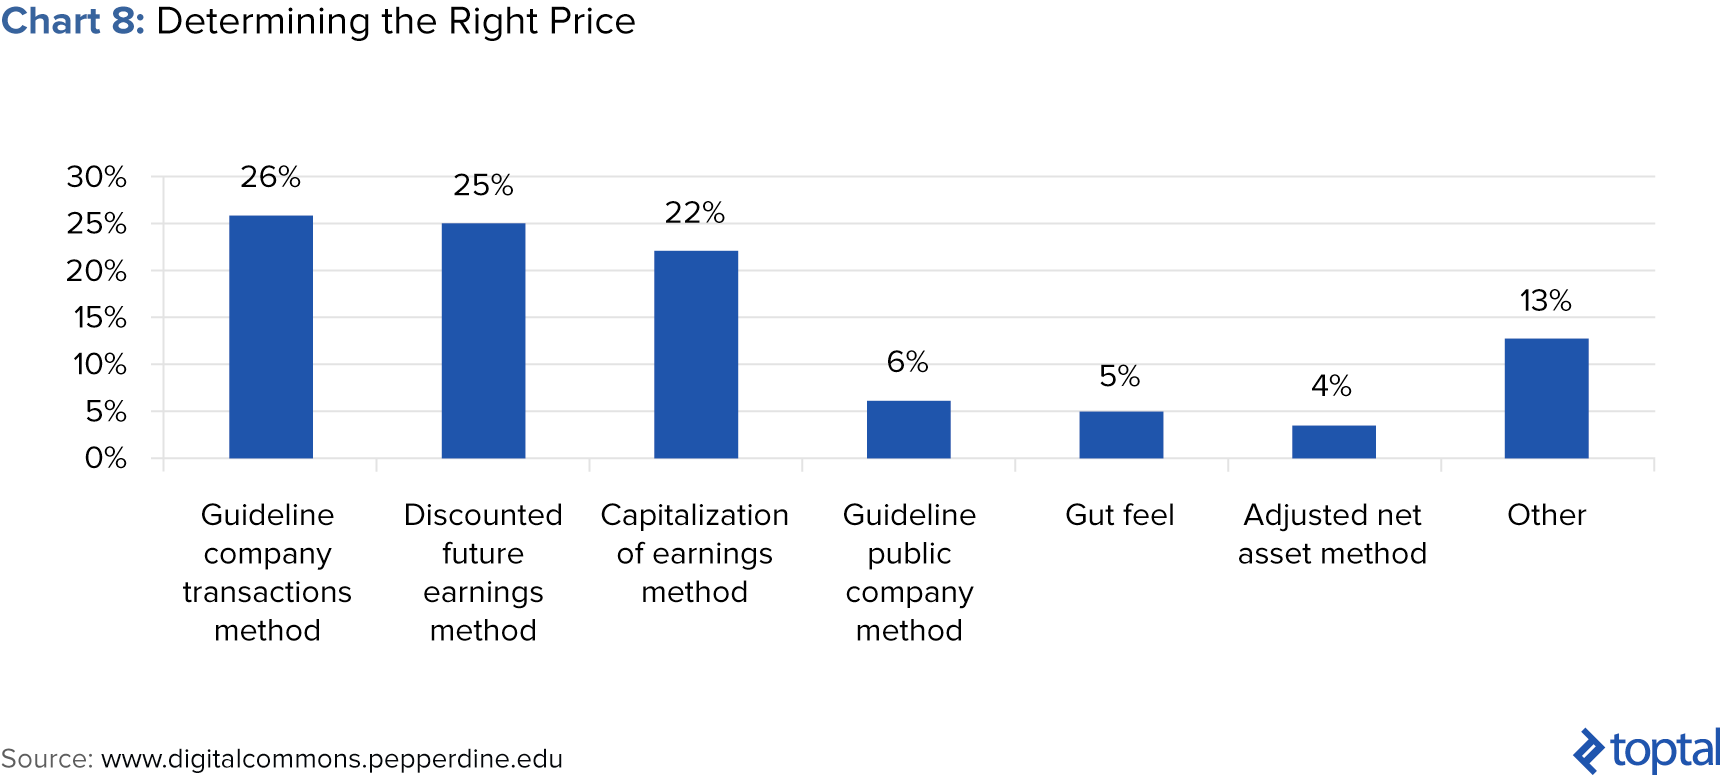 Chart 8: Determining the Right Price